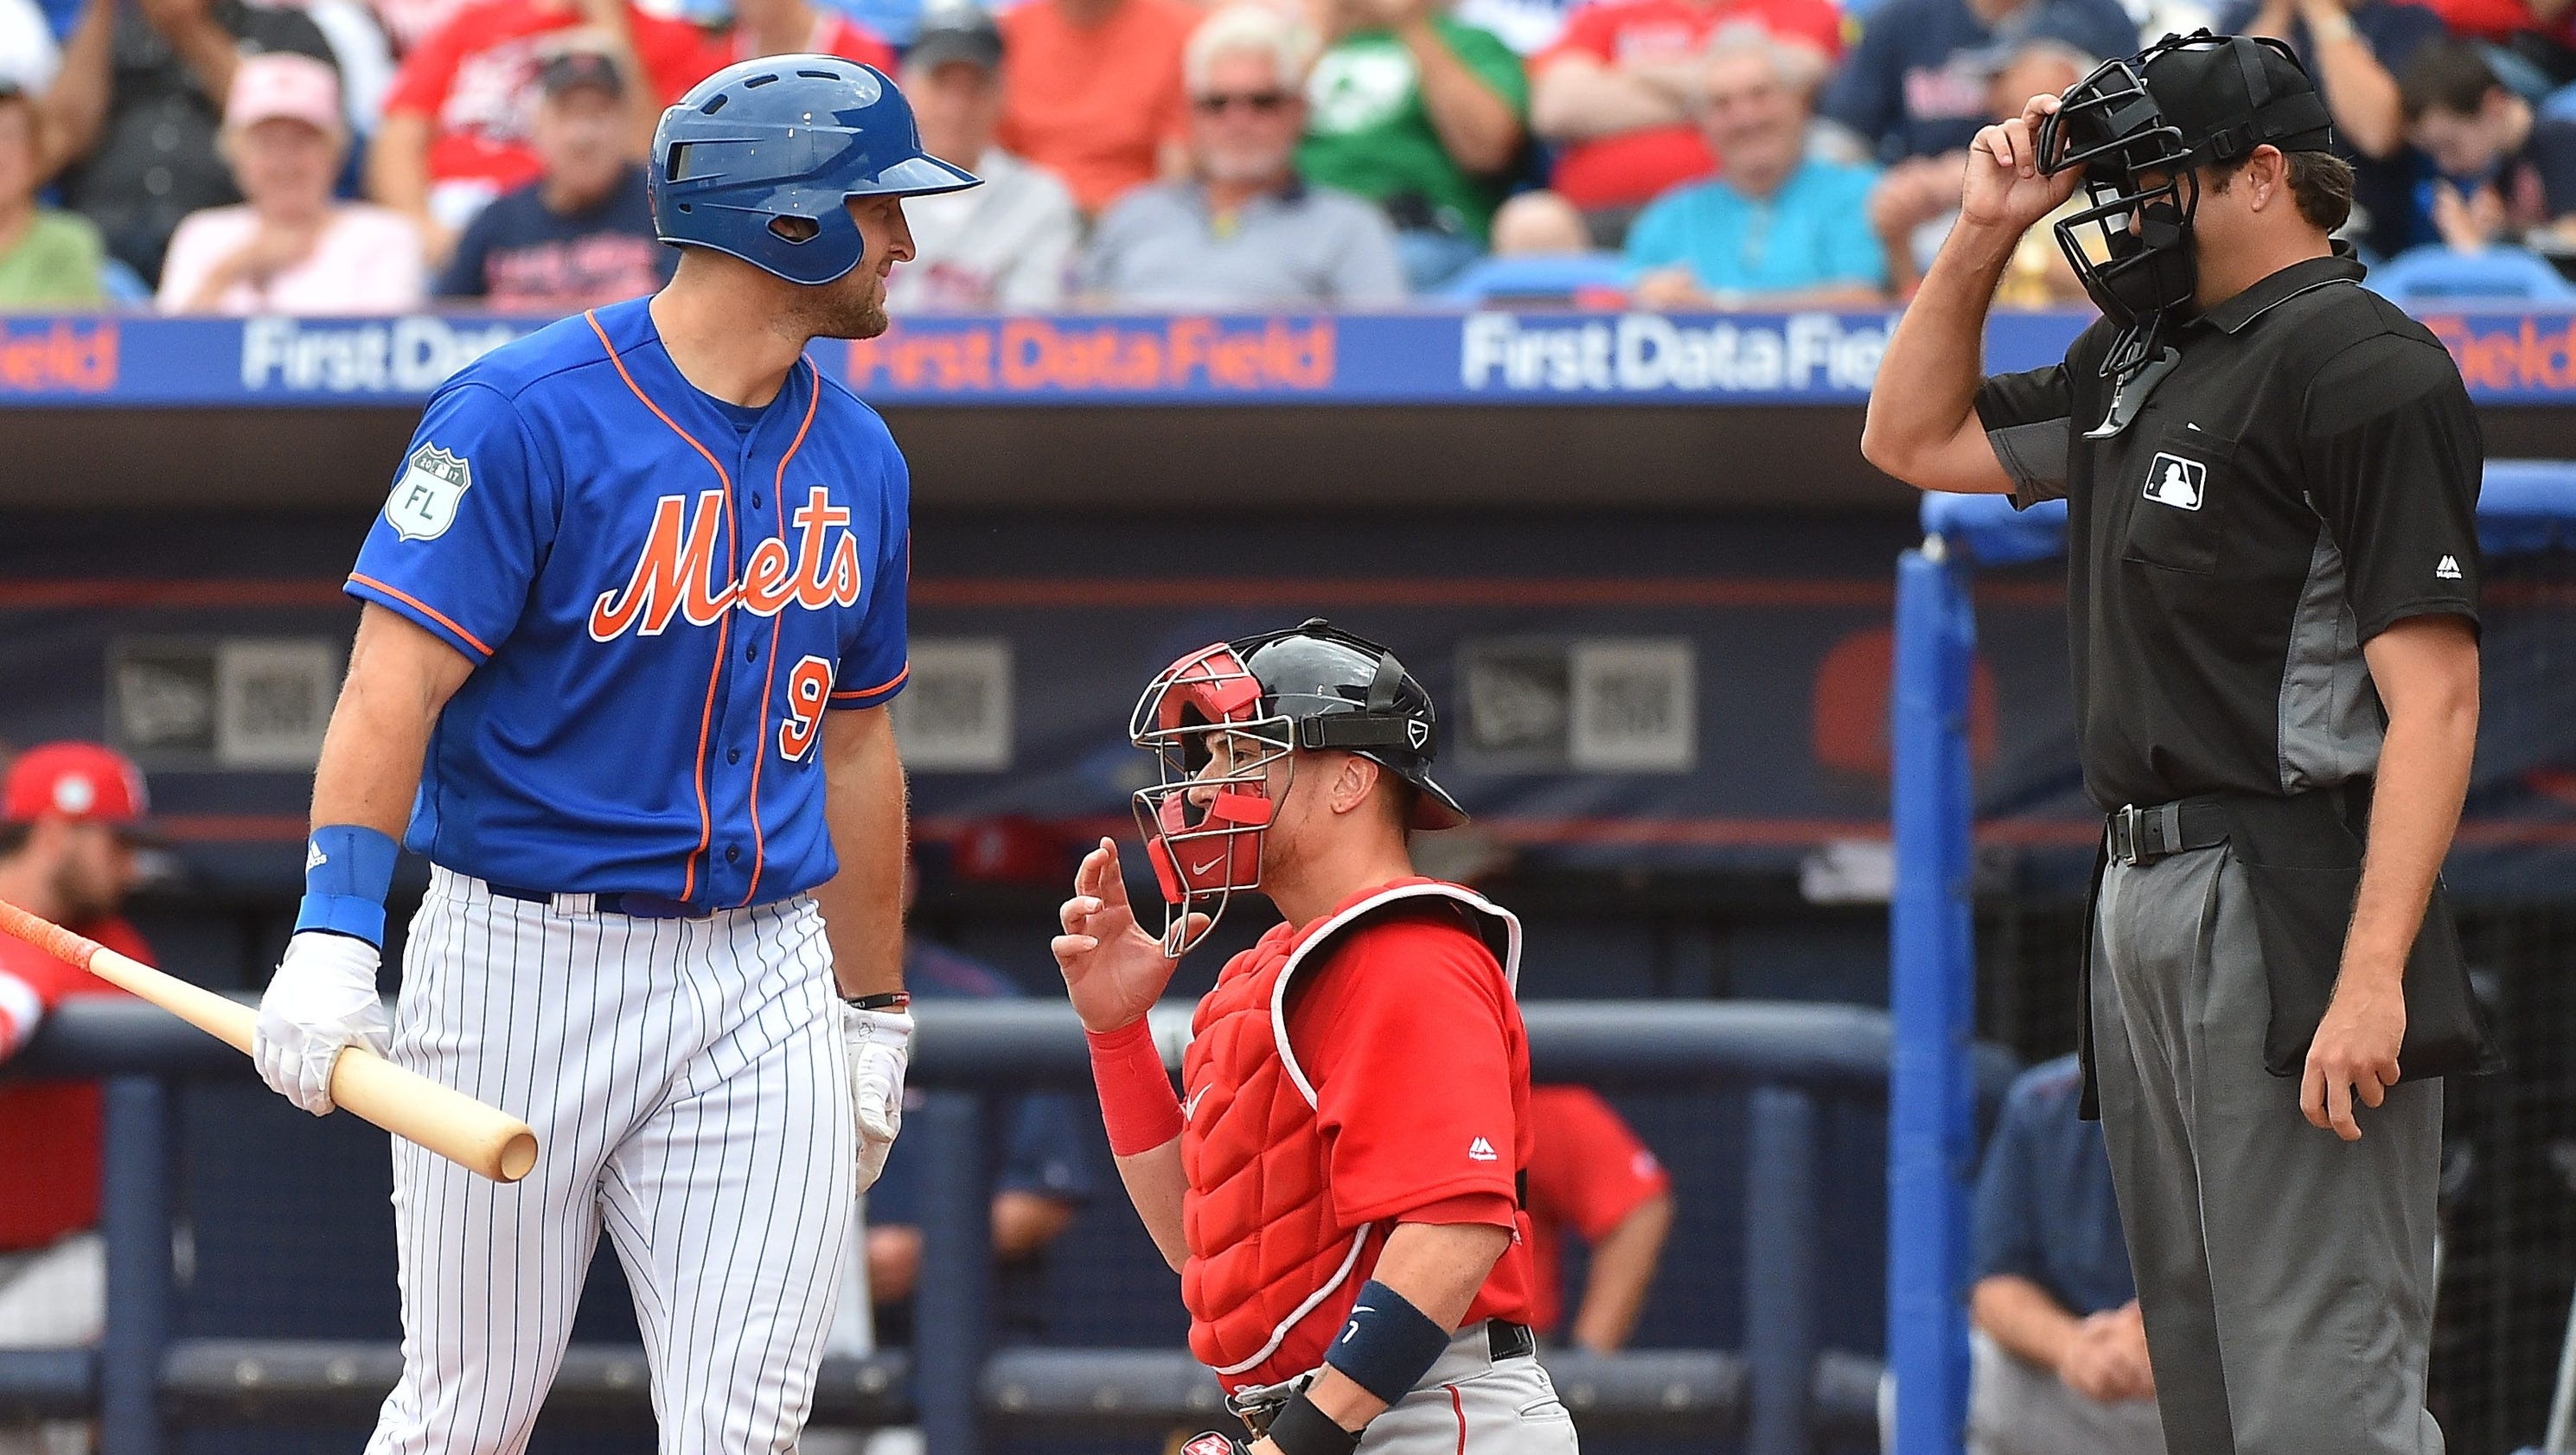 Tim tebow goes hitless in three at bats in debut with new for Soggiorni estivi tim 2017